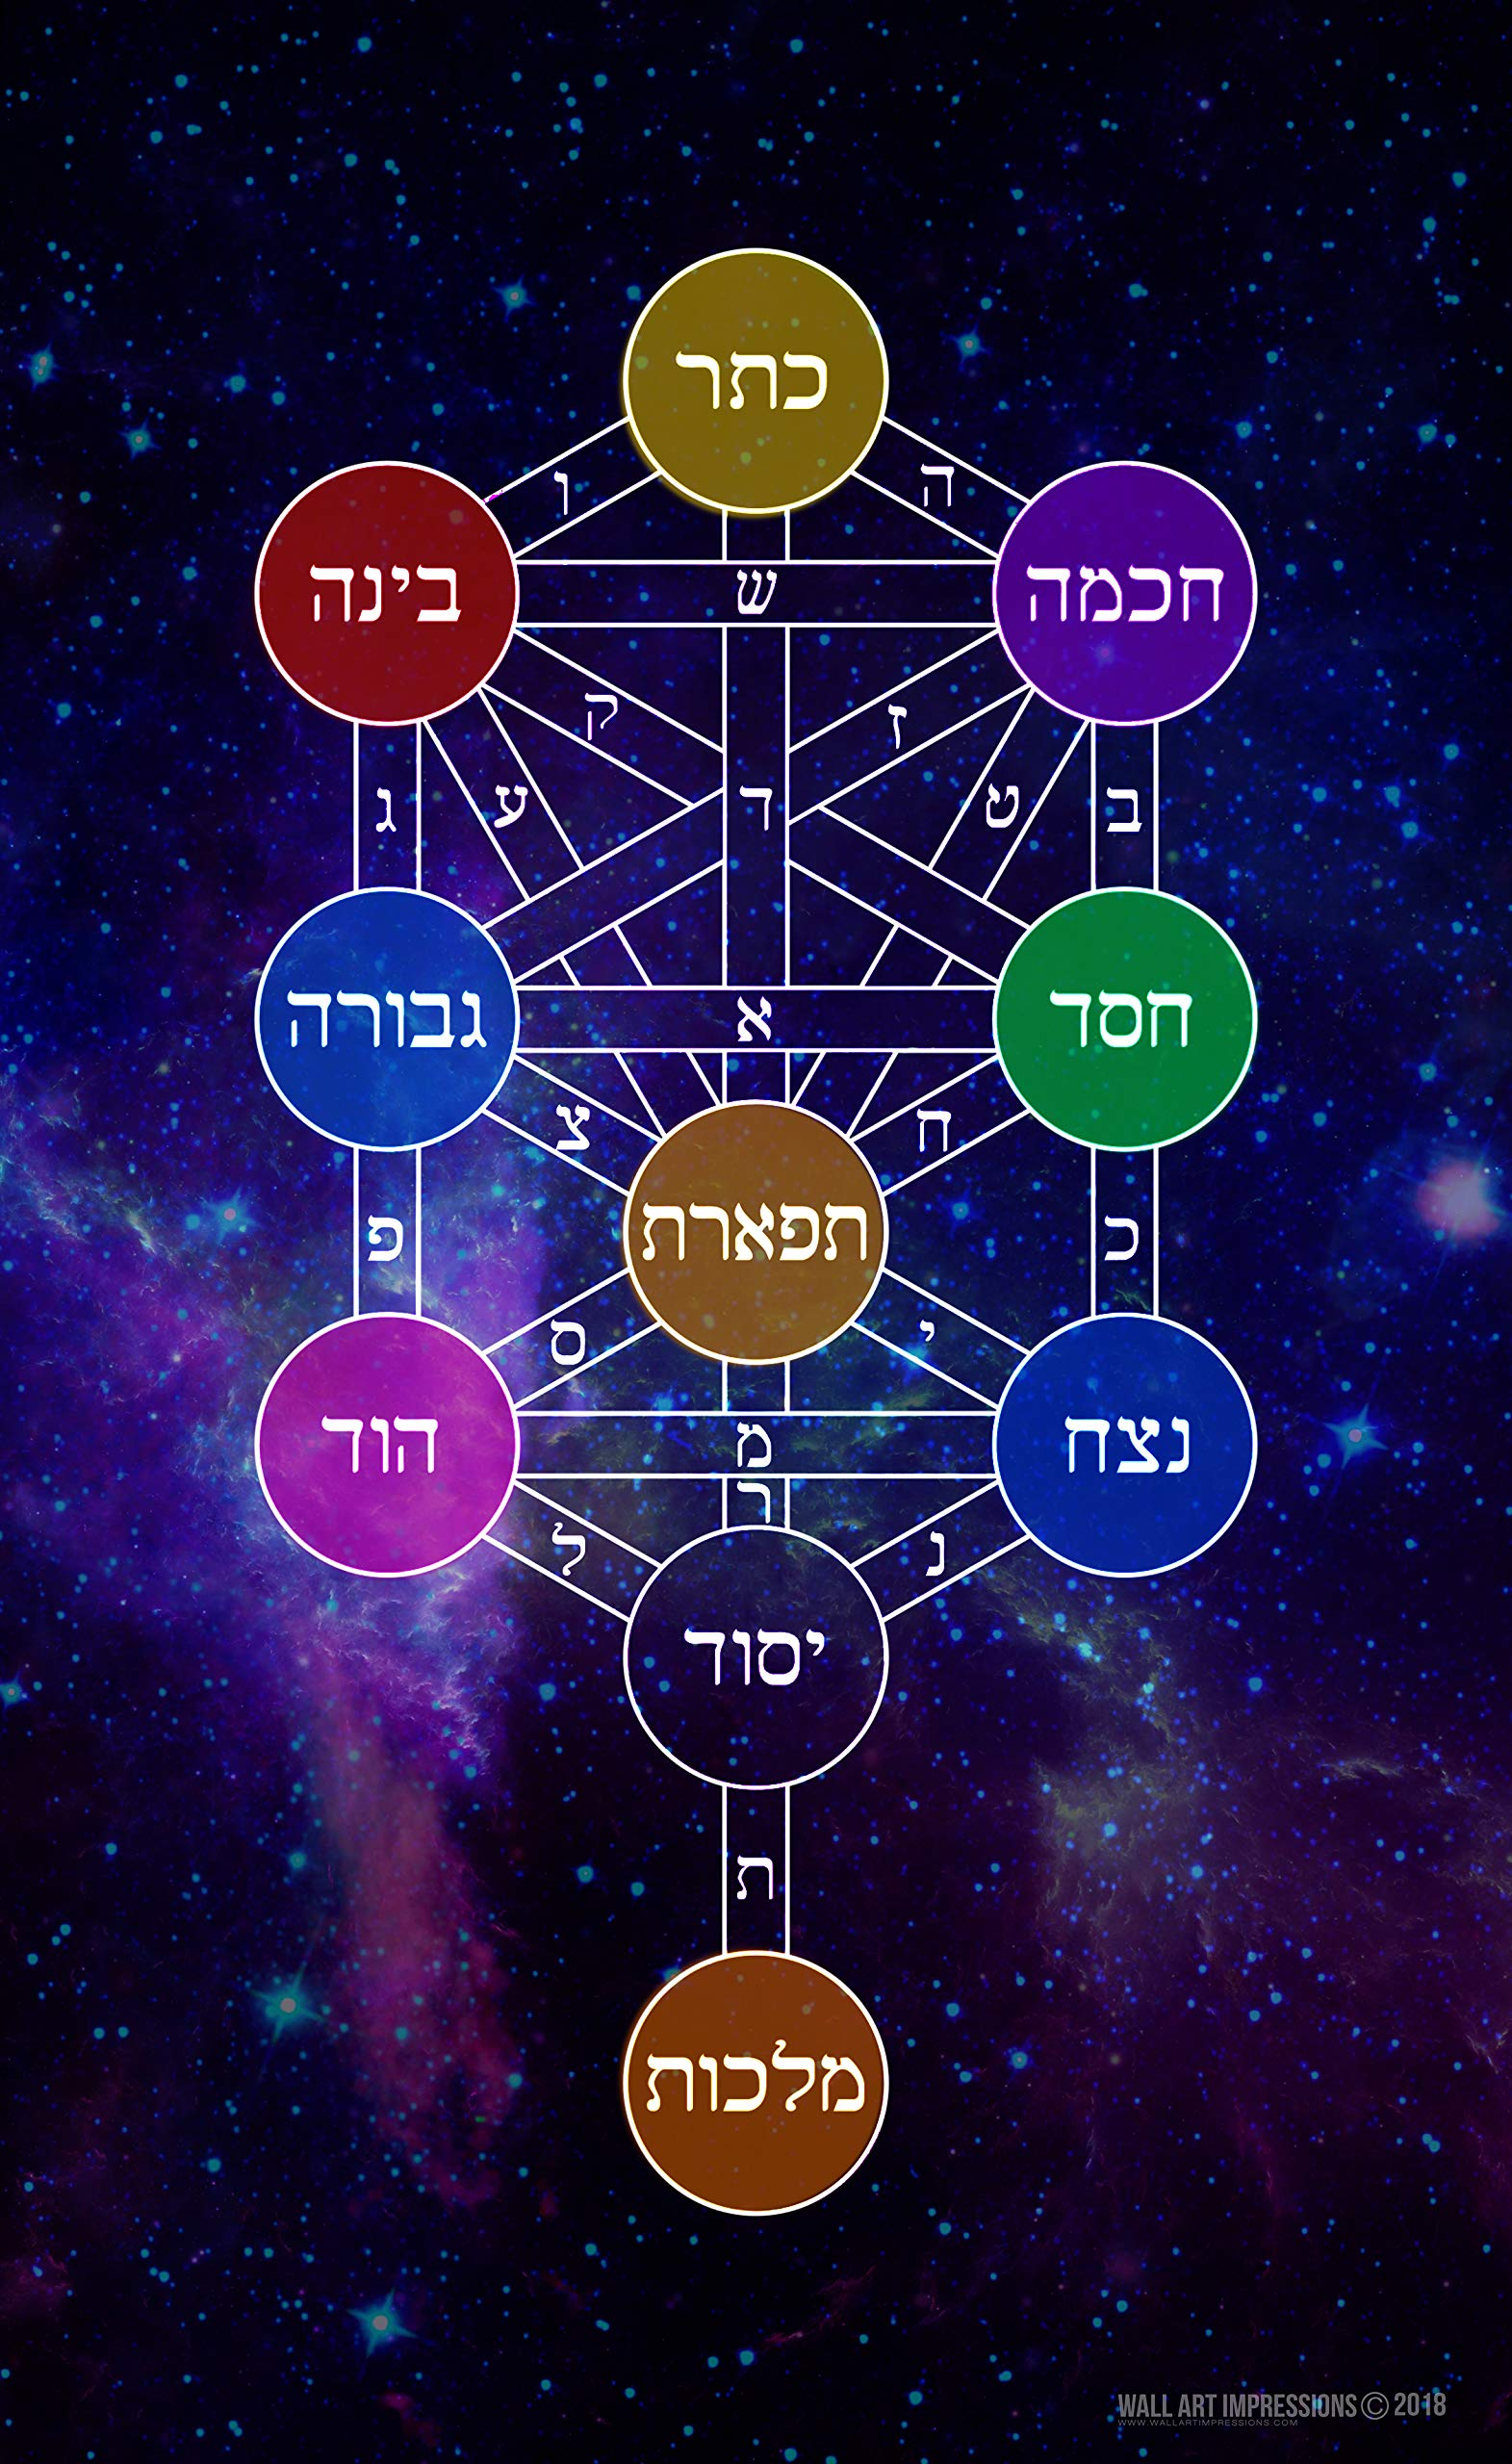 The Kabbalah Tree Of Life 8 5x11 Quick Reference Chart Buy Online In Liechtenstein At Liechtenstein Desertcart Com Productid 91320689 Astrology software project that will chart user data to an astrological chart, a tarot display, the kabbalah tree of life highlighting aspects and planets correspondence to those systems. desertcart